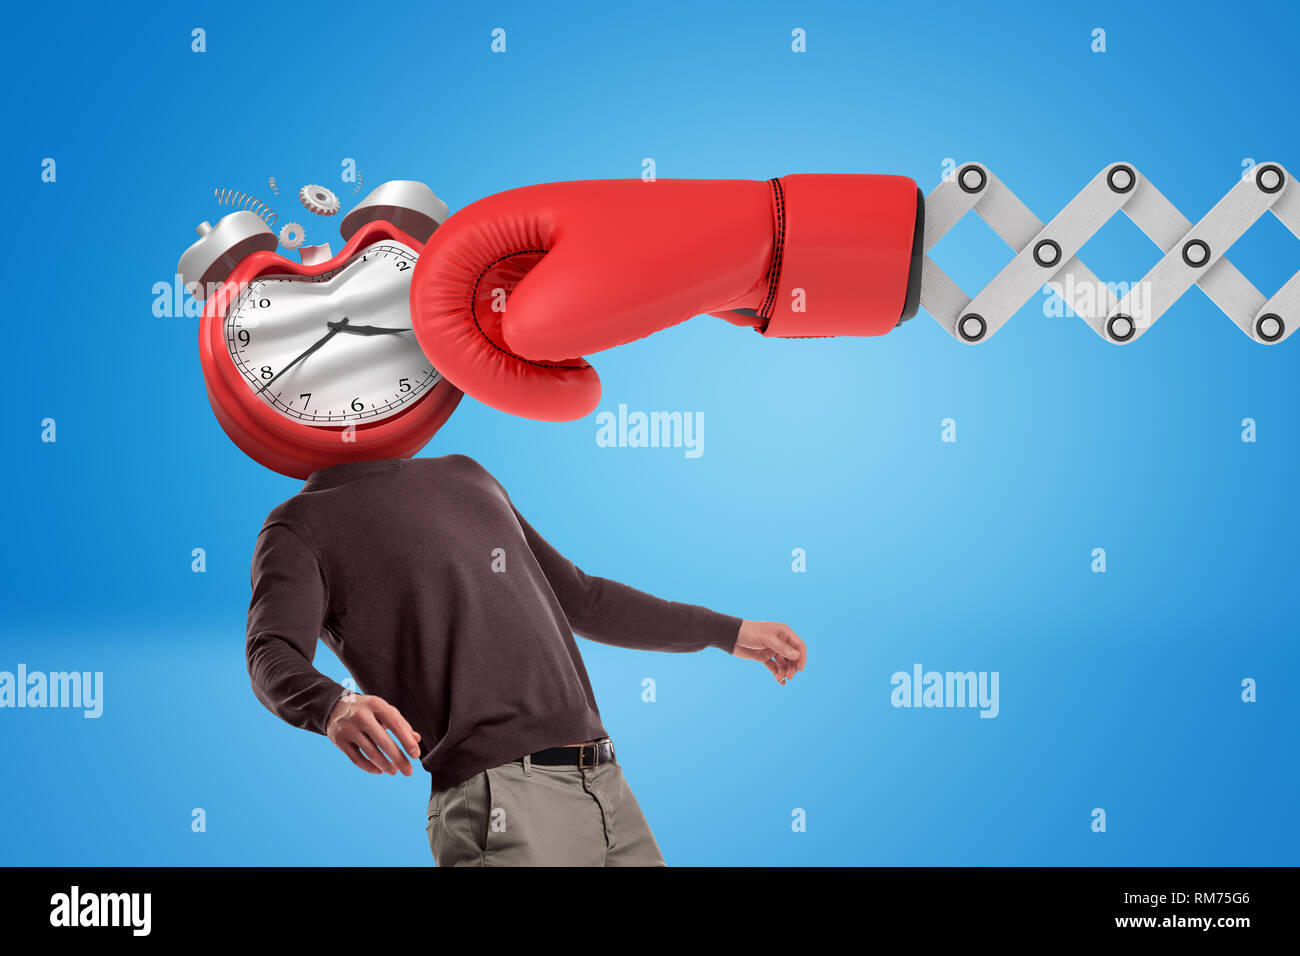 Huge red boxing glove punching man with an alarm clock instead of his face on blue background. - Stock Image